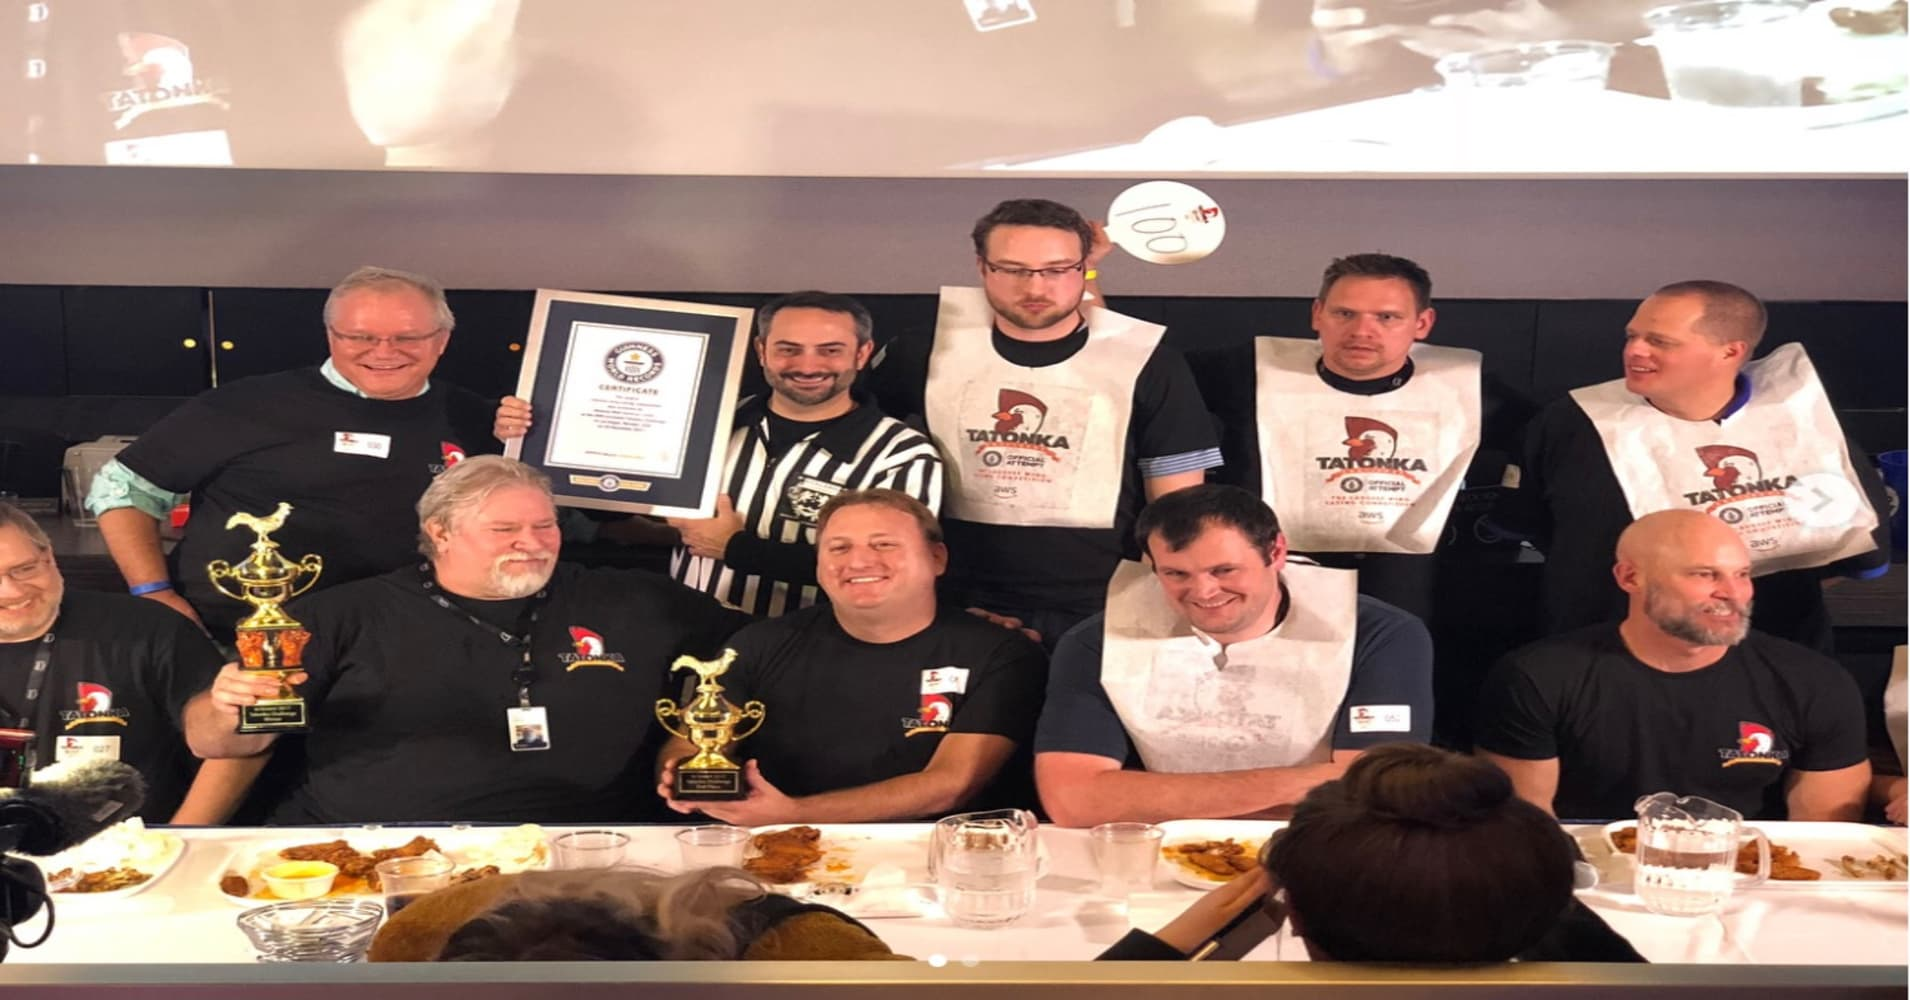 Jeff Bezos congratulates his Amazon team for winning a Guinness World Record in chicken-wing eating